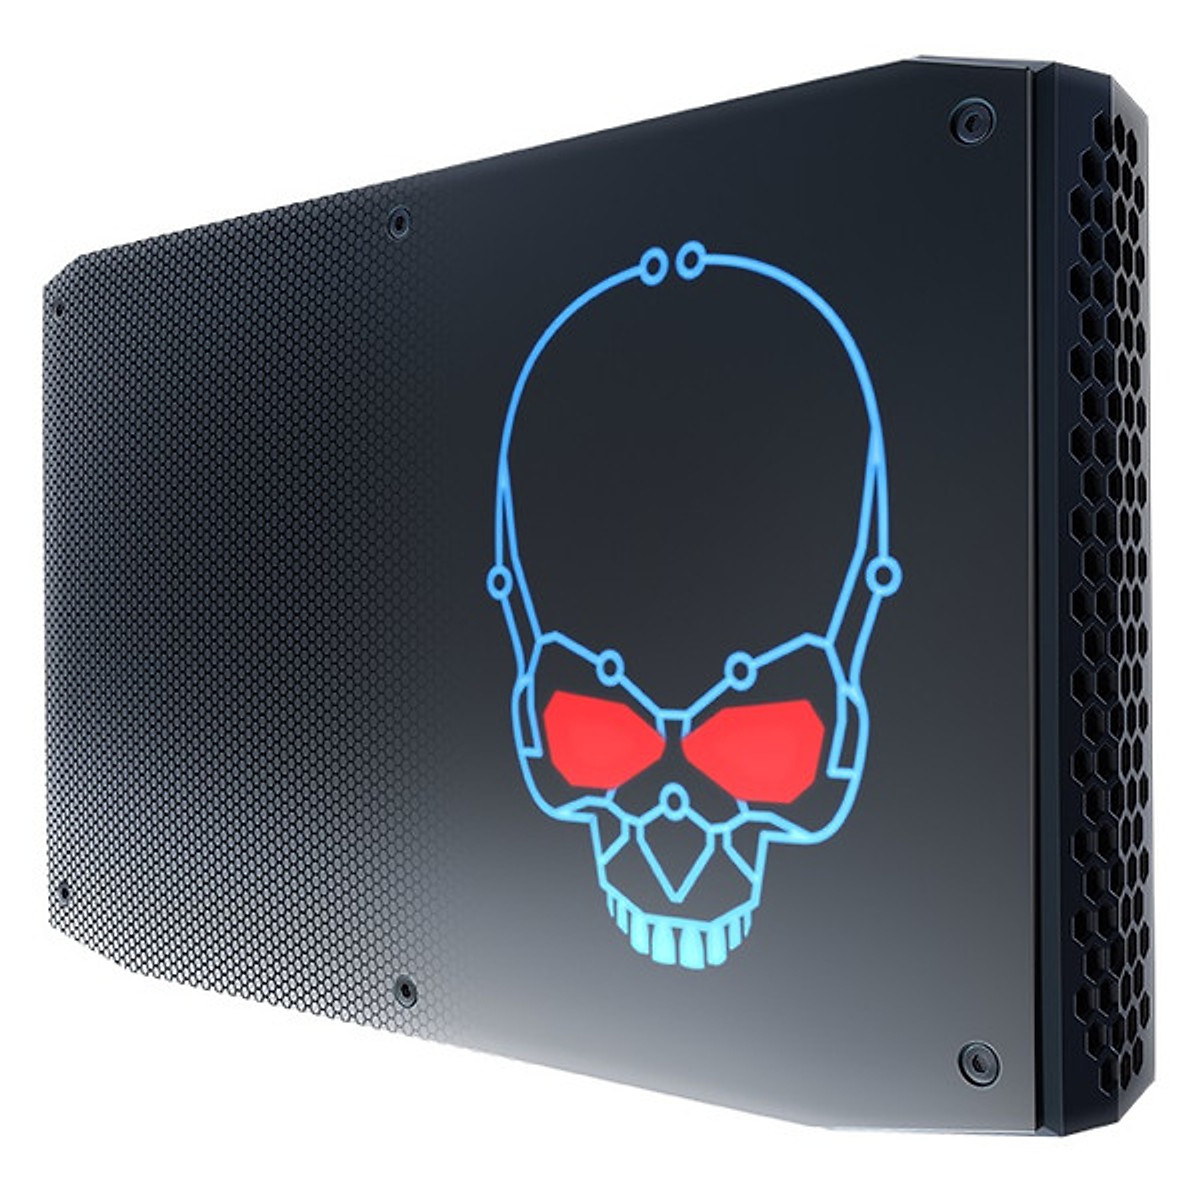 Máy tính bộ PC Intel NUC Kit BOXNUC8I7HVK2 ( Intel Core™ i7-8089G/  Radeon™ RX Vega M GH graphics )